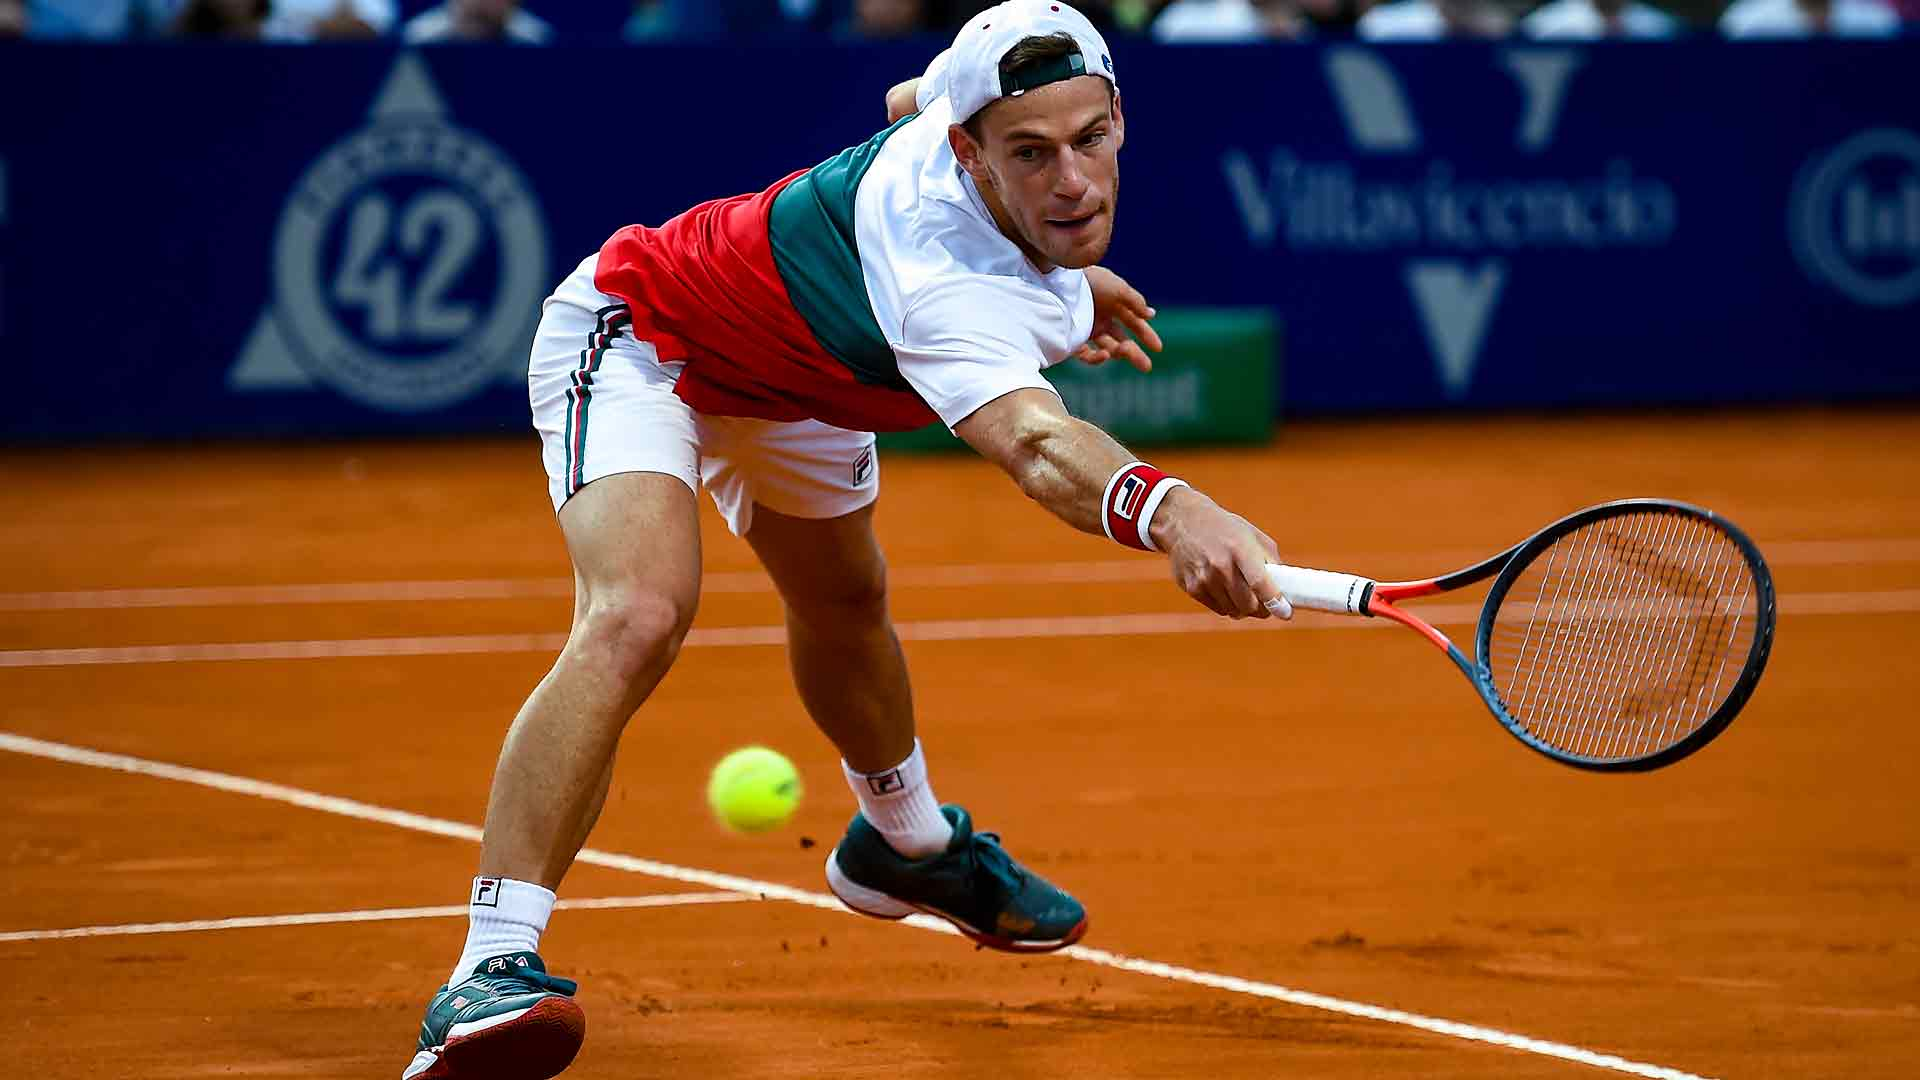 Diego Schwartzman I Am In The Best Shape Theunionjournal The Union Journal